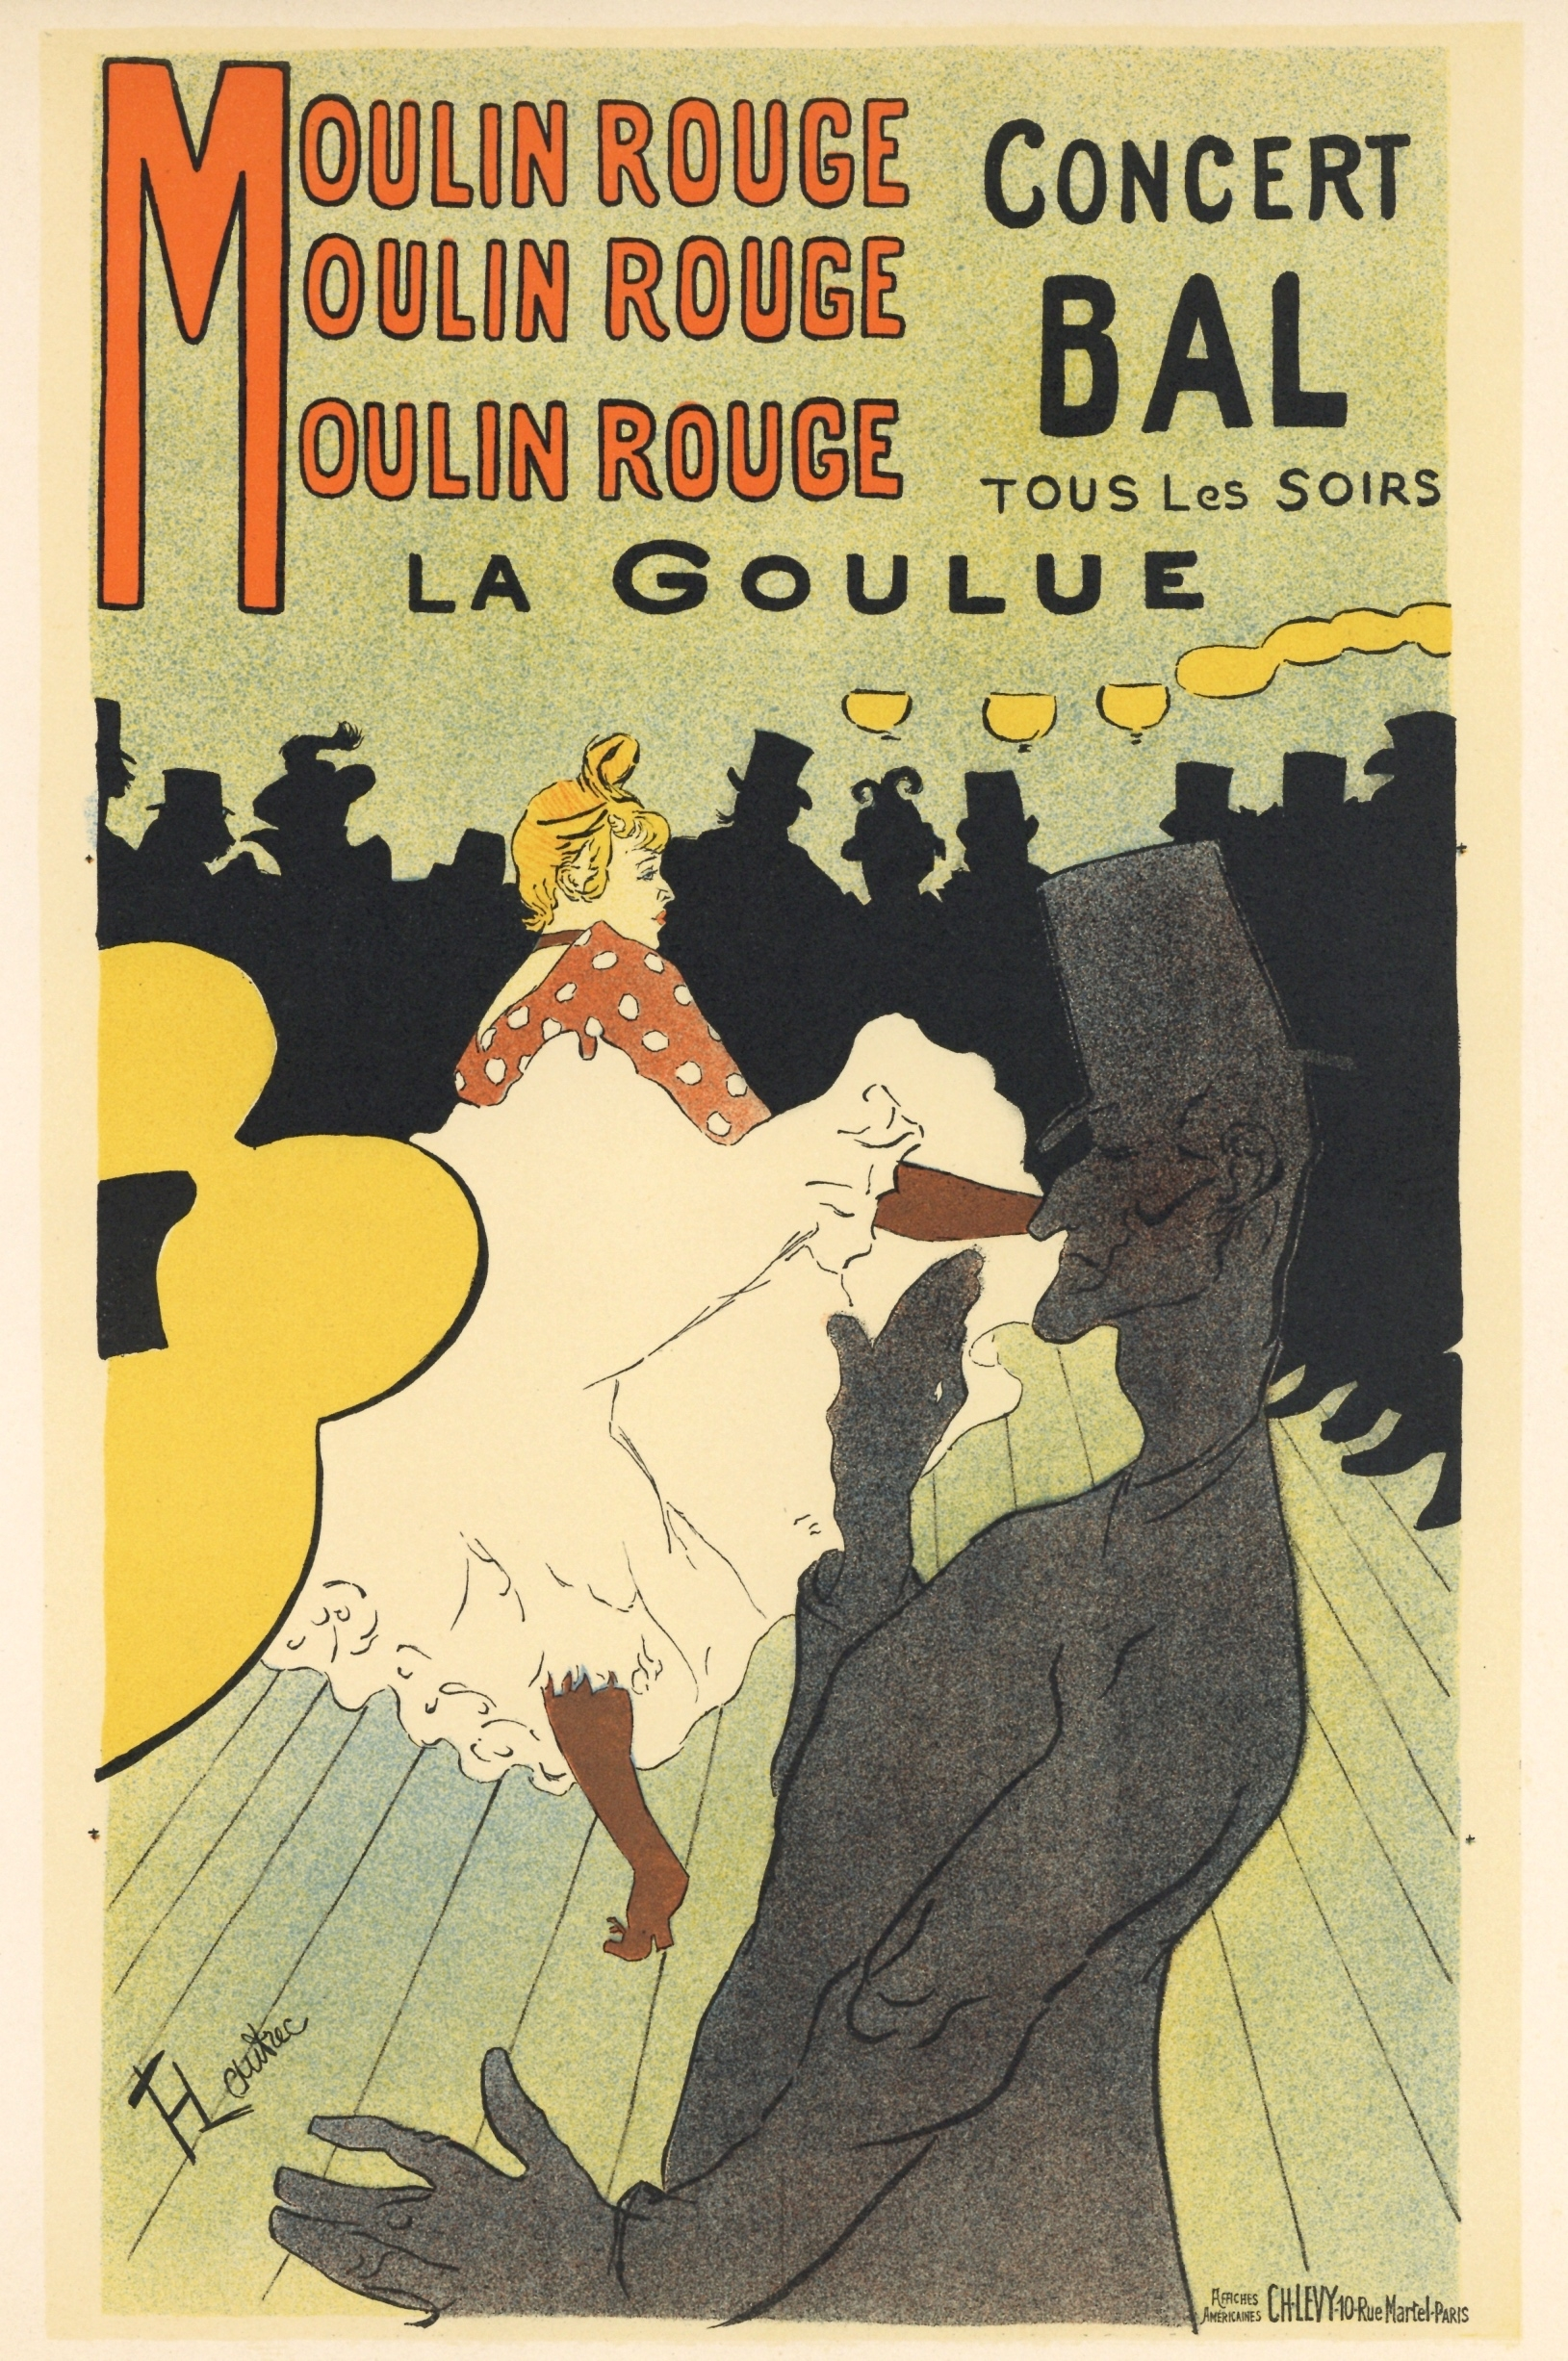 toulouse lautrec lithograph poster moulin rouge la goulue plus color decompositions. Black Bedroom Furniture Sets. Home Design Ideas